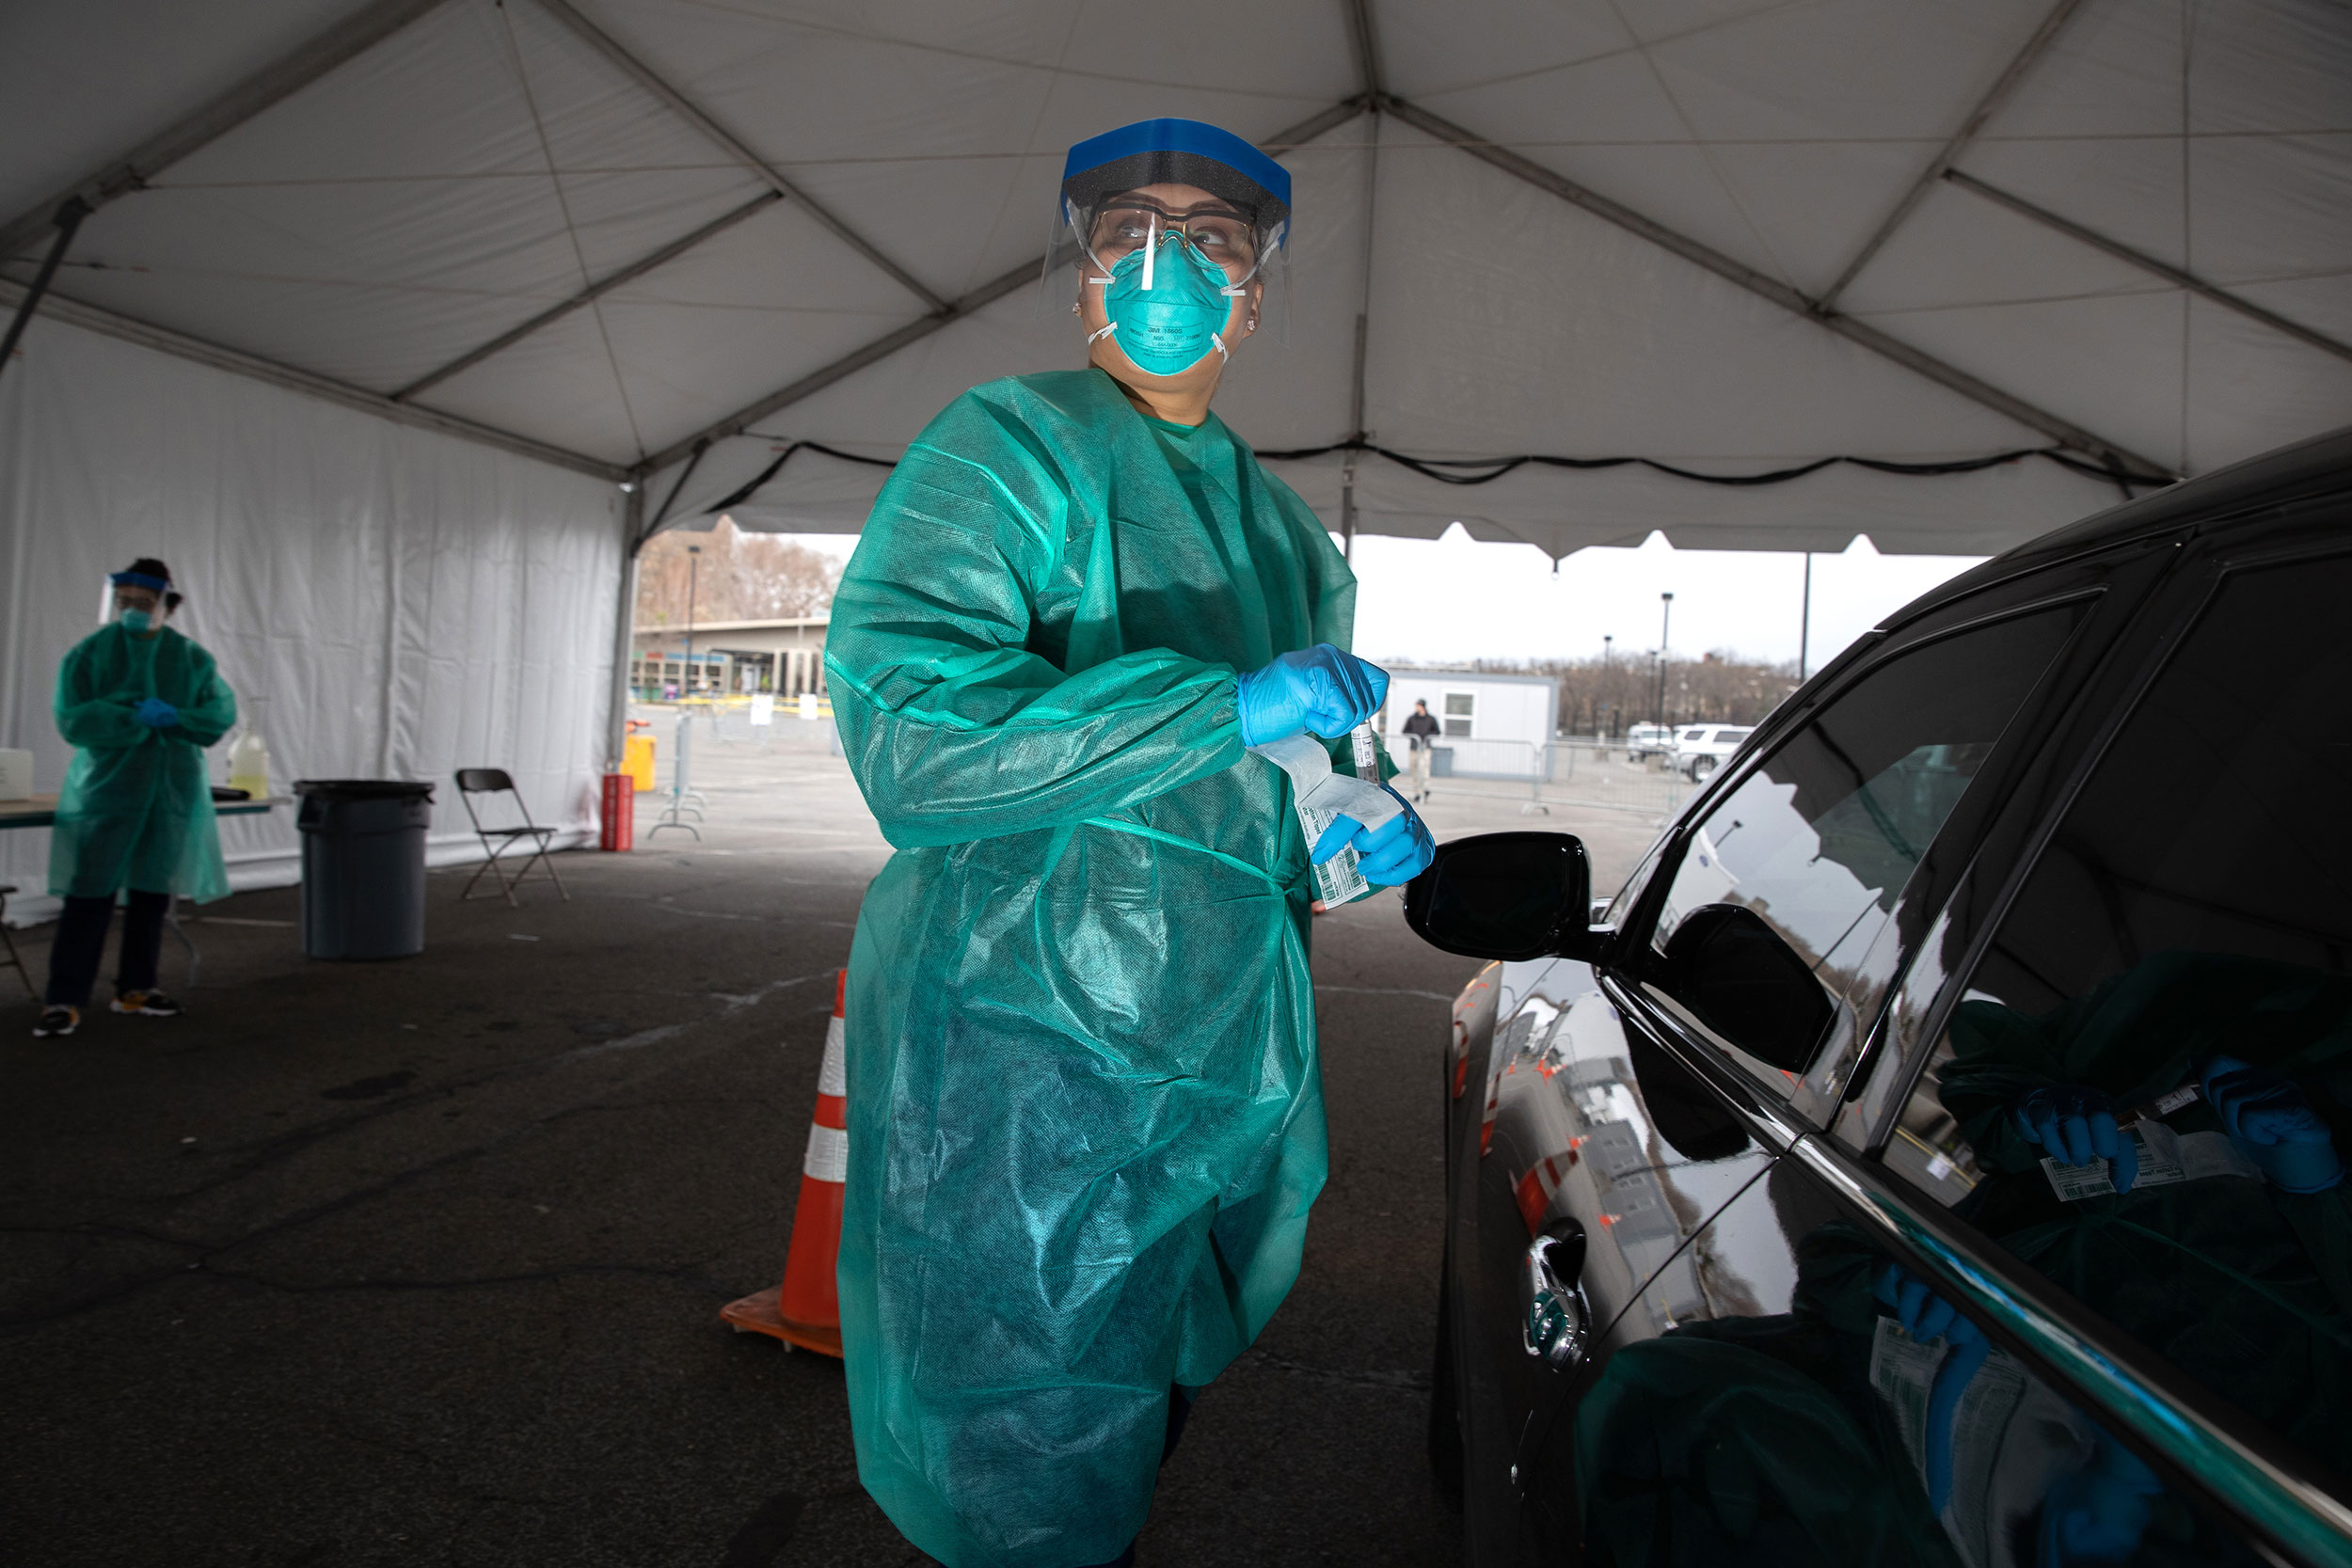 A doctor from SOMOS Community Care prepares to test a patient at a drive-through testing center at Lehman College in New York City on March 28.